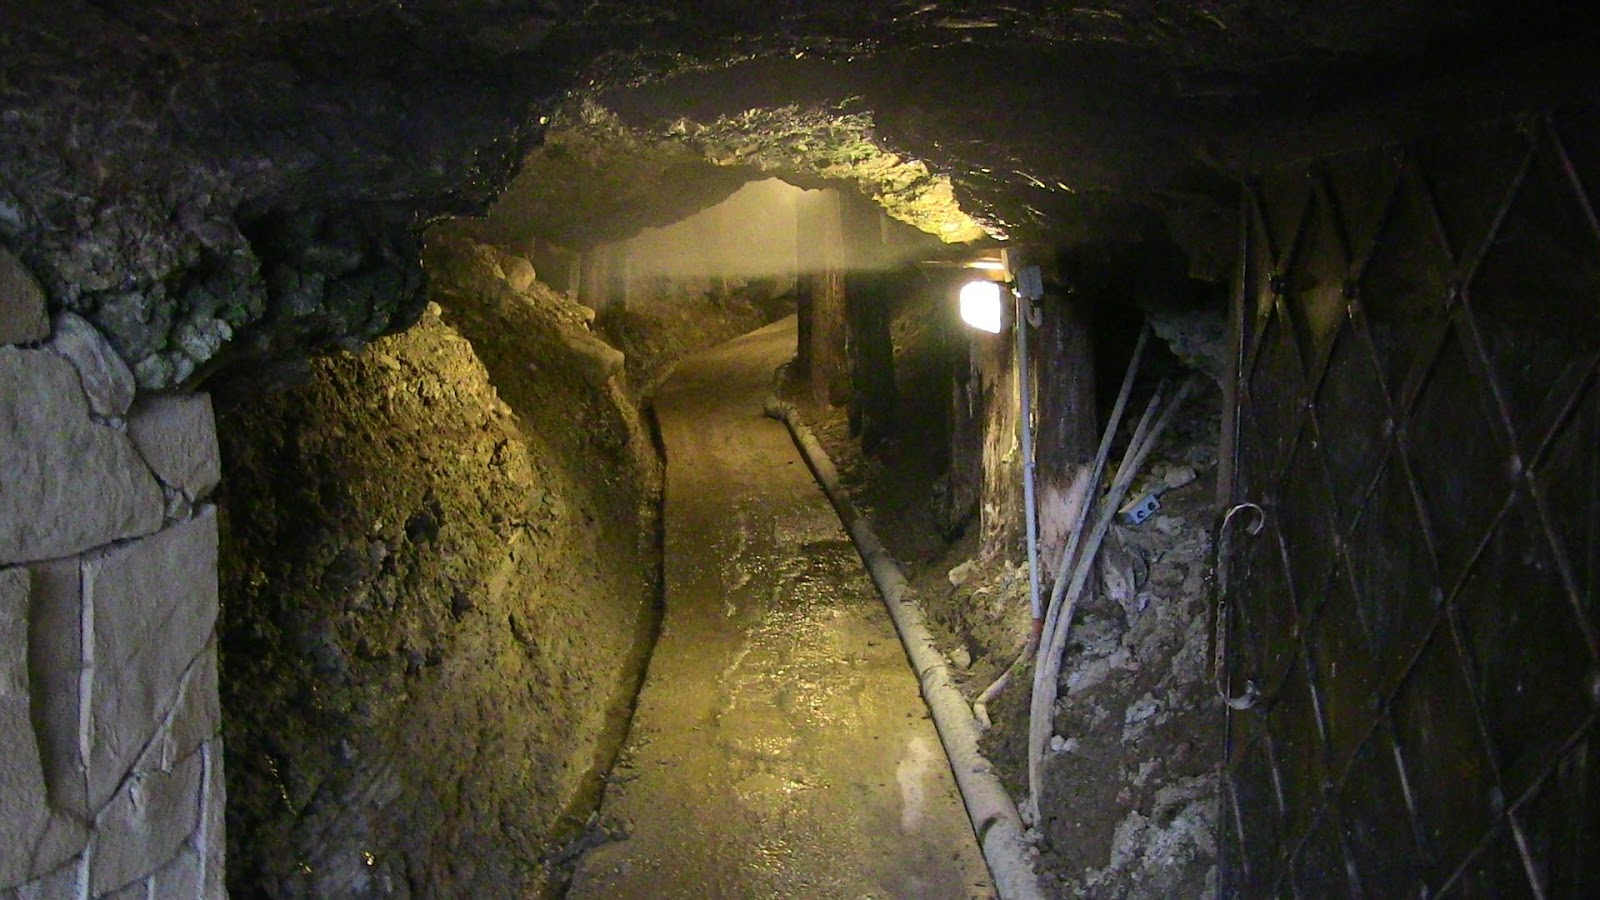 The-entrance-to-Ravne-Tunnel-Labyrinth-in-the-Bosnian-Valley-of-the-Pyramids-Visoko-Bosnia-January-9-2015.jpg